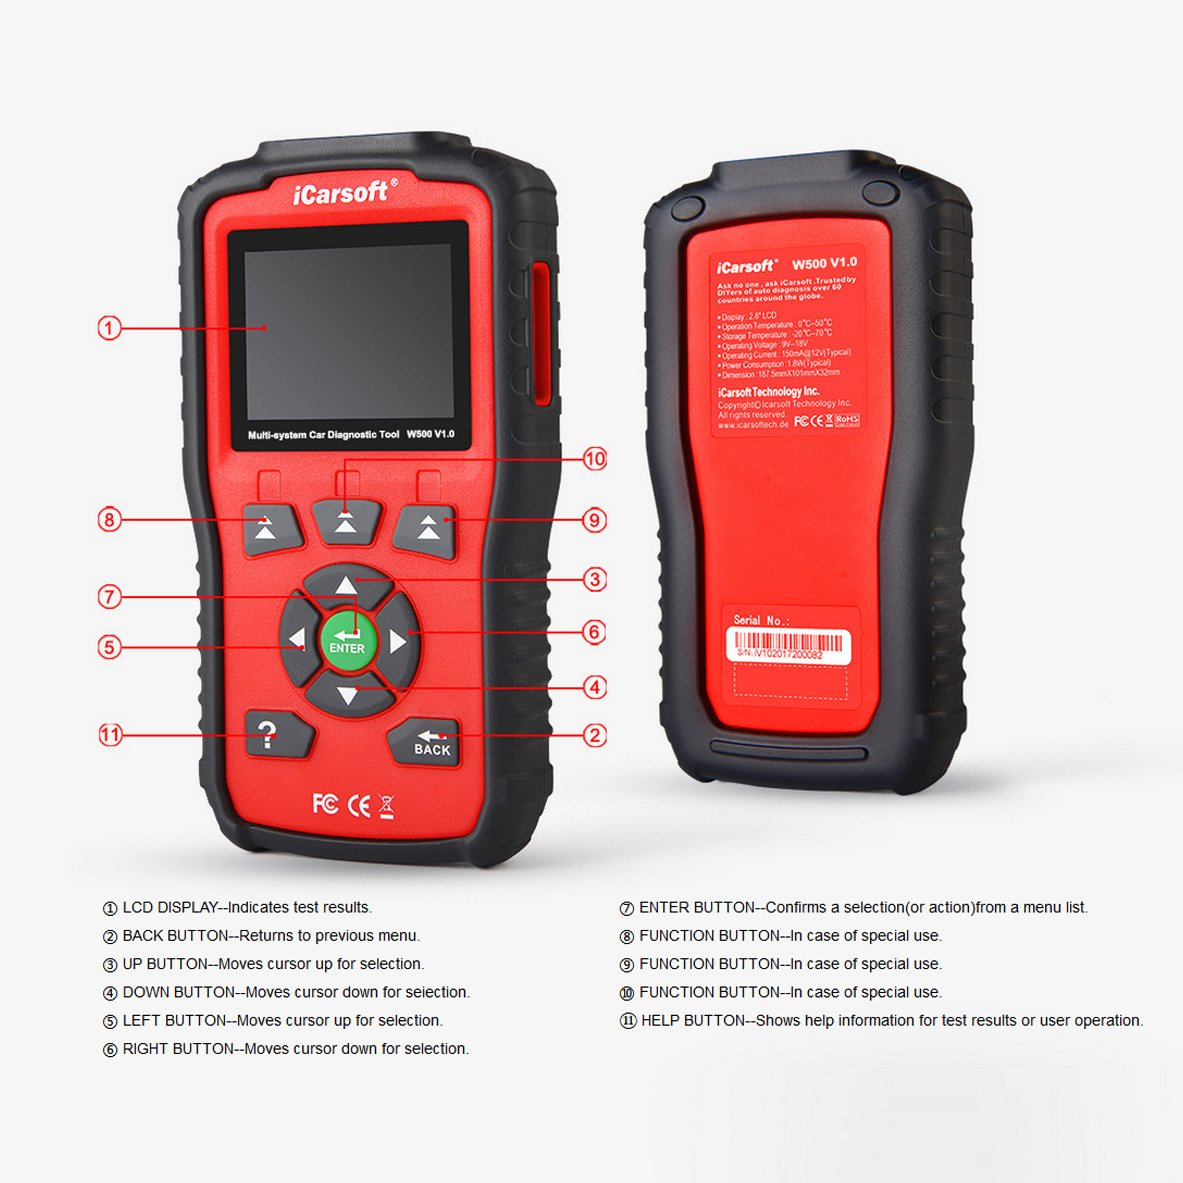 iCarsoft Auto Diagnostic Scanner W500 V1.0 for Audi/VW/Seat/Skoda with ABS Scan,Oil Service Reset ect by iCarsoft (Image #2)